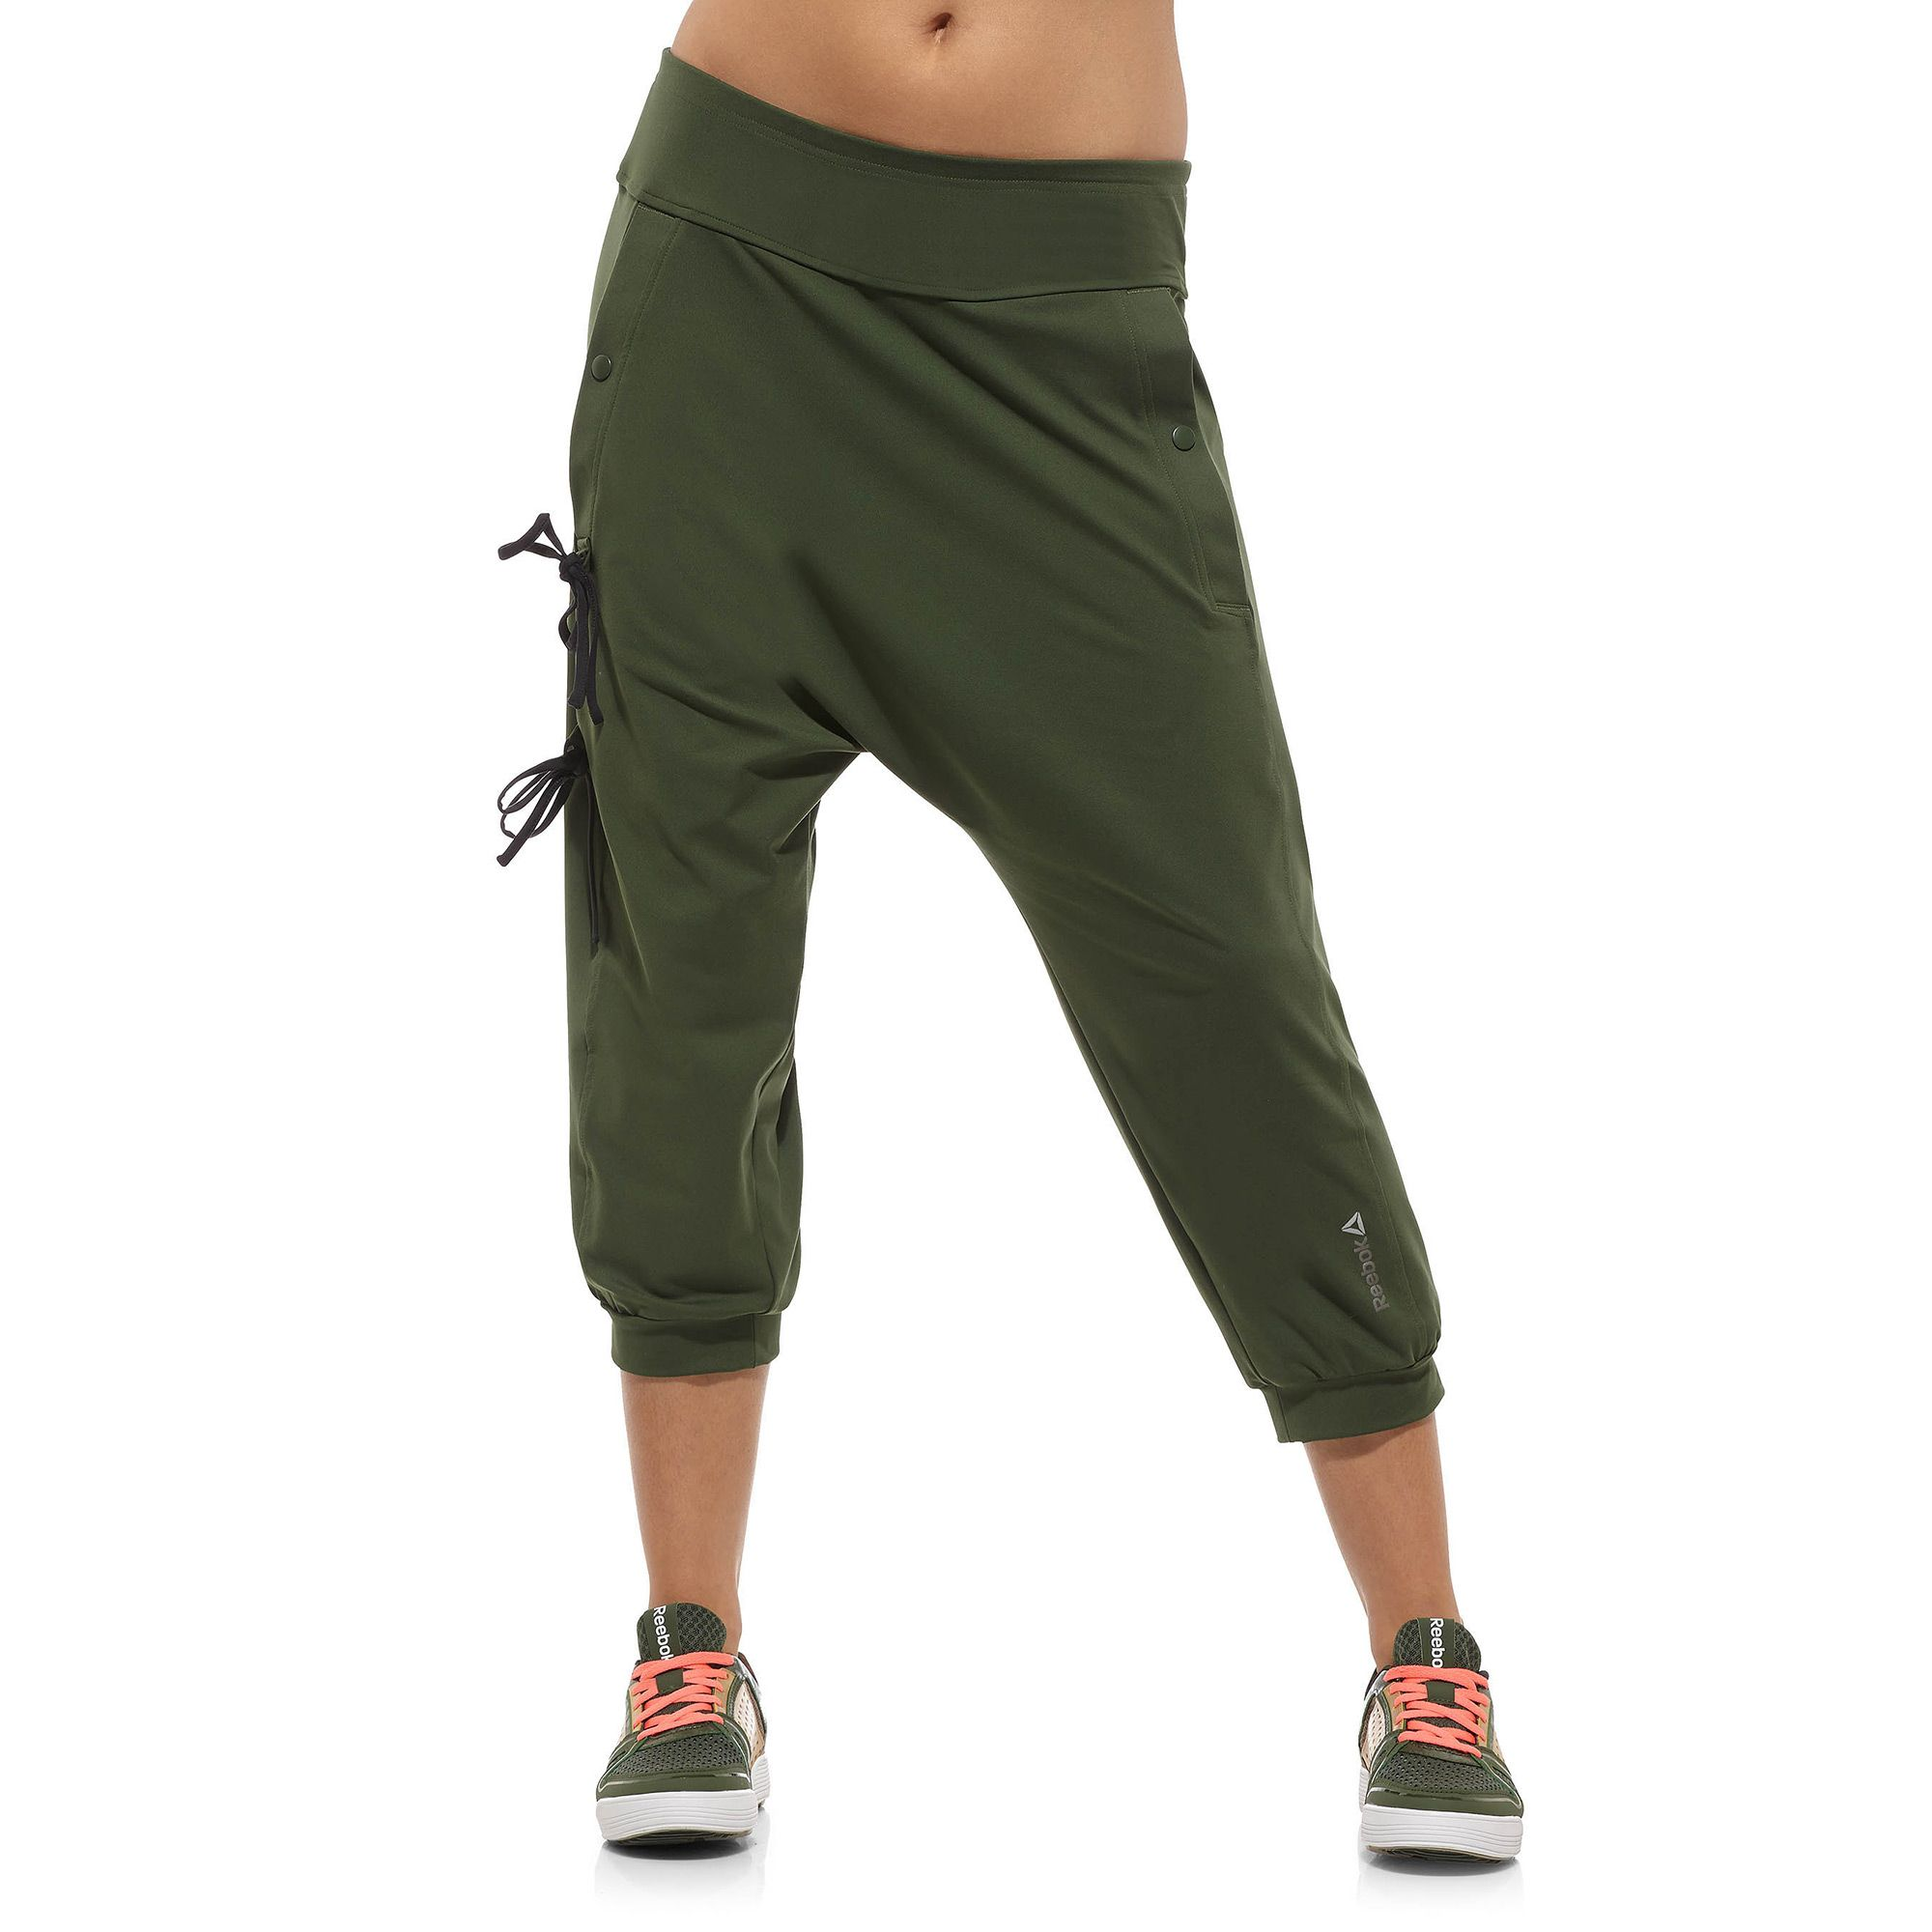 reebok play dry pants womens cheap   OFF69% The Largest Catalog ... 8cac8a8b6